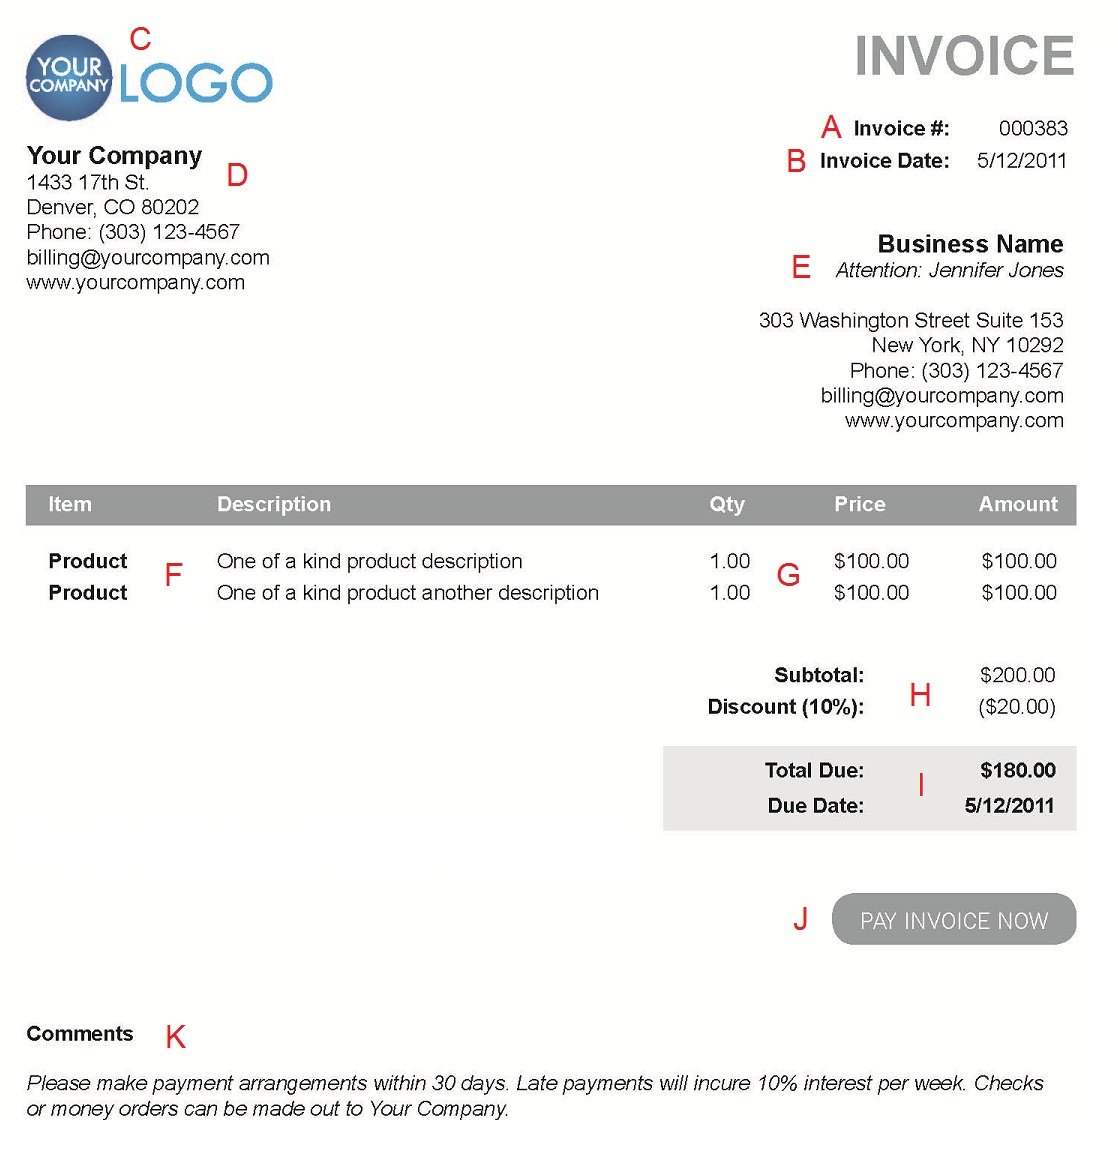 Centralasianshepherdus  Seductive The  Different Sections Of An Electronic Payment Invoice With Entrancing A  With Agreeable Download Invoice Template Also Woocommerce Invoice In Addition Ups Invoice And Consultant Invoice Template As Well As Make Invoice Additionally Best Invoice App From Paysimplecom With Centralasianshepherdus  Entrancing The  Different Sections Of An Electronic Payment Invoice With Agreeable A  And Seductive Download Invoice Template Also Woocommerce Invoice In Addition Ups Invoice From Paysimplecom